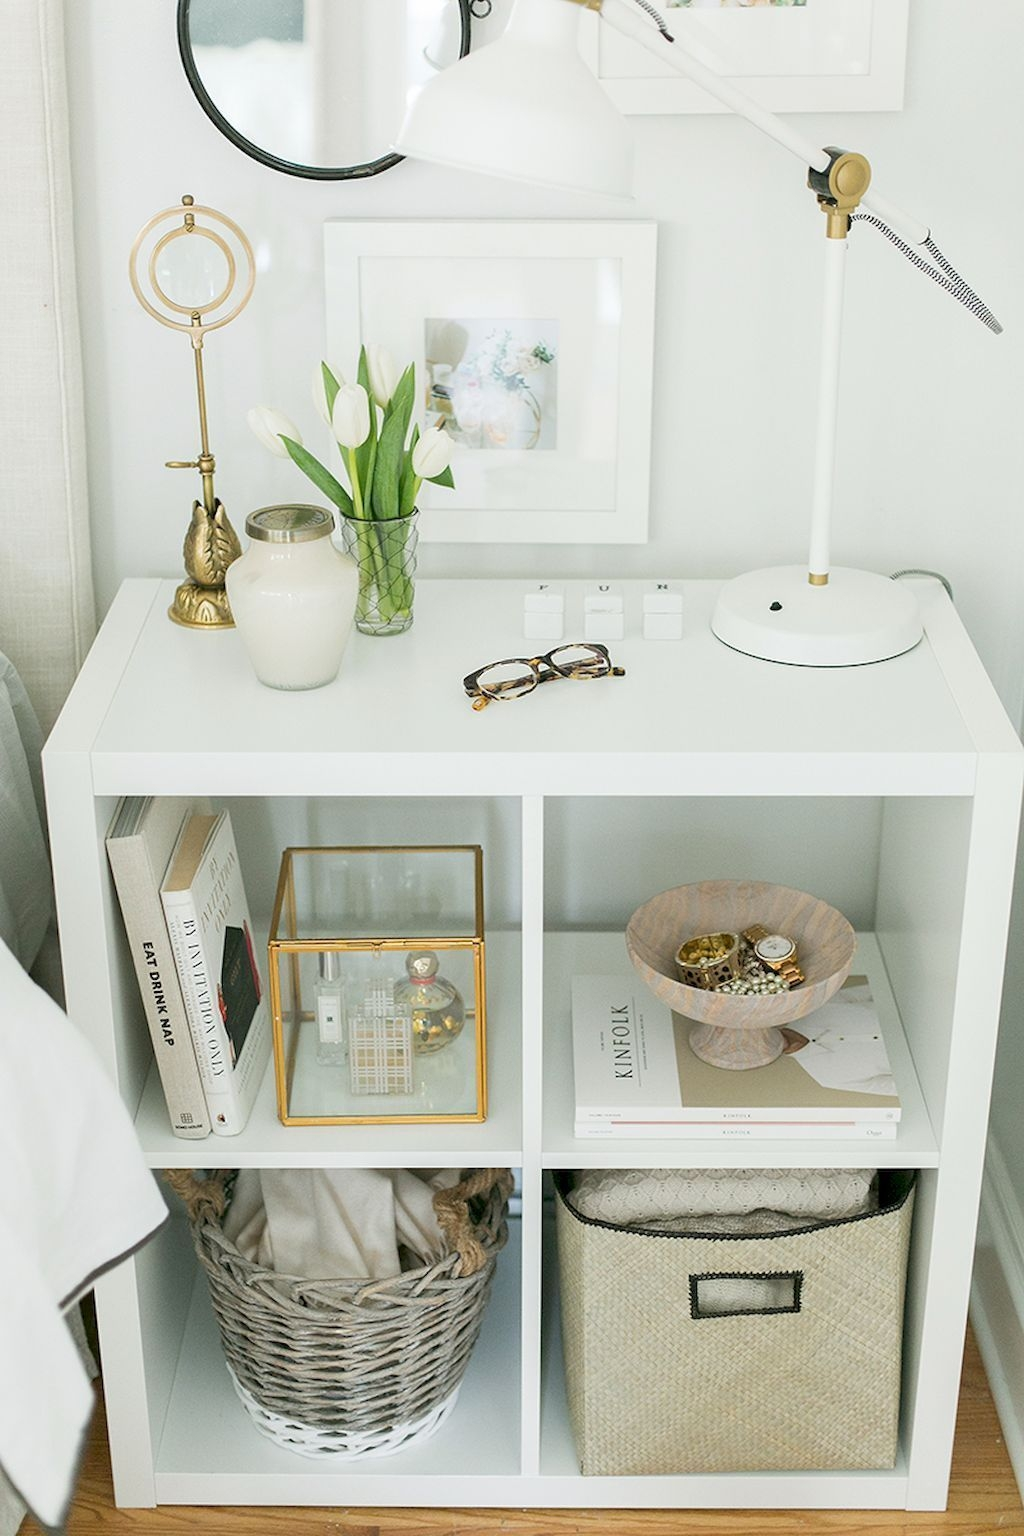 Easy Diy College Apartment Decorating Ideas On A Budget 19